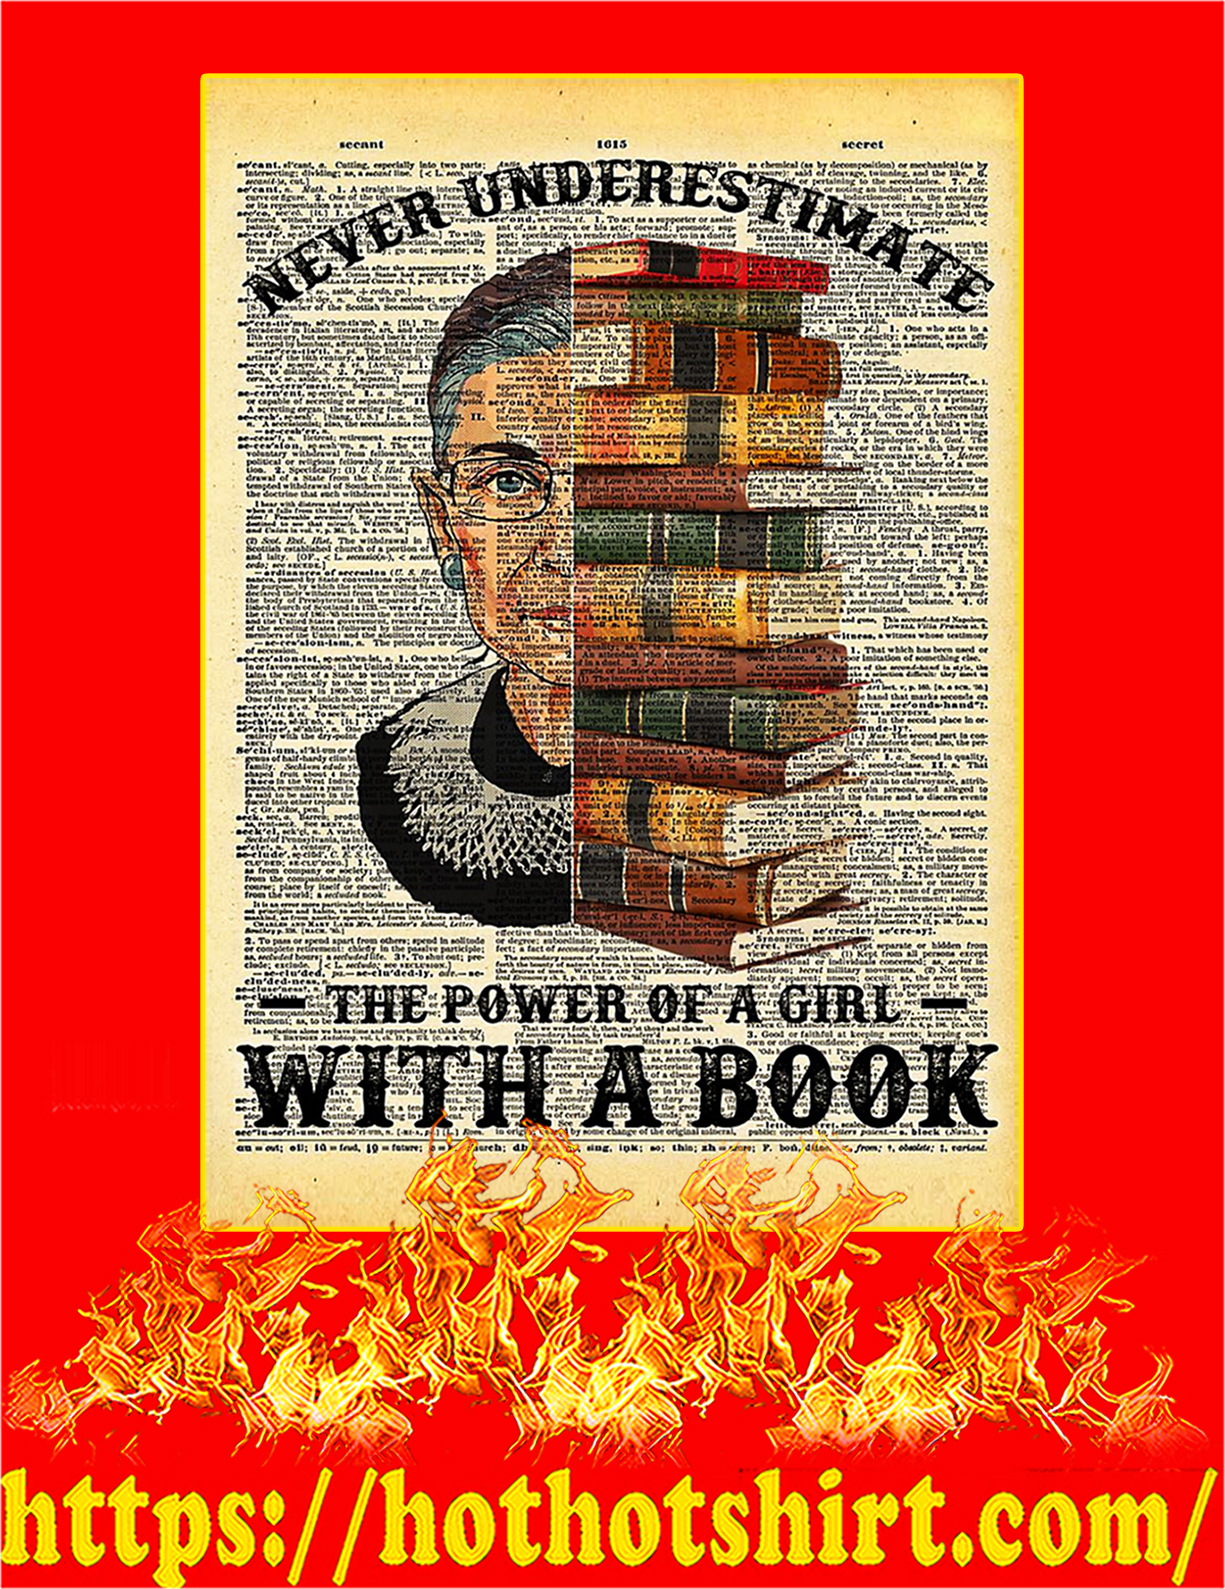 Never Underestimate The Power Of A Girl With A Book Poster - A2